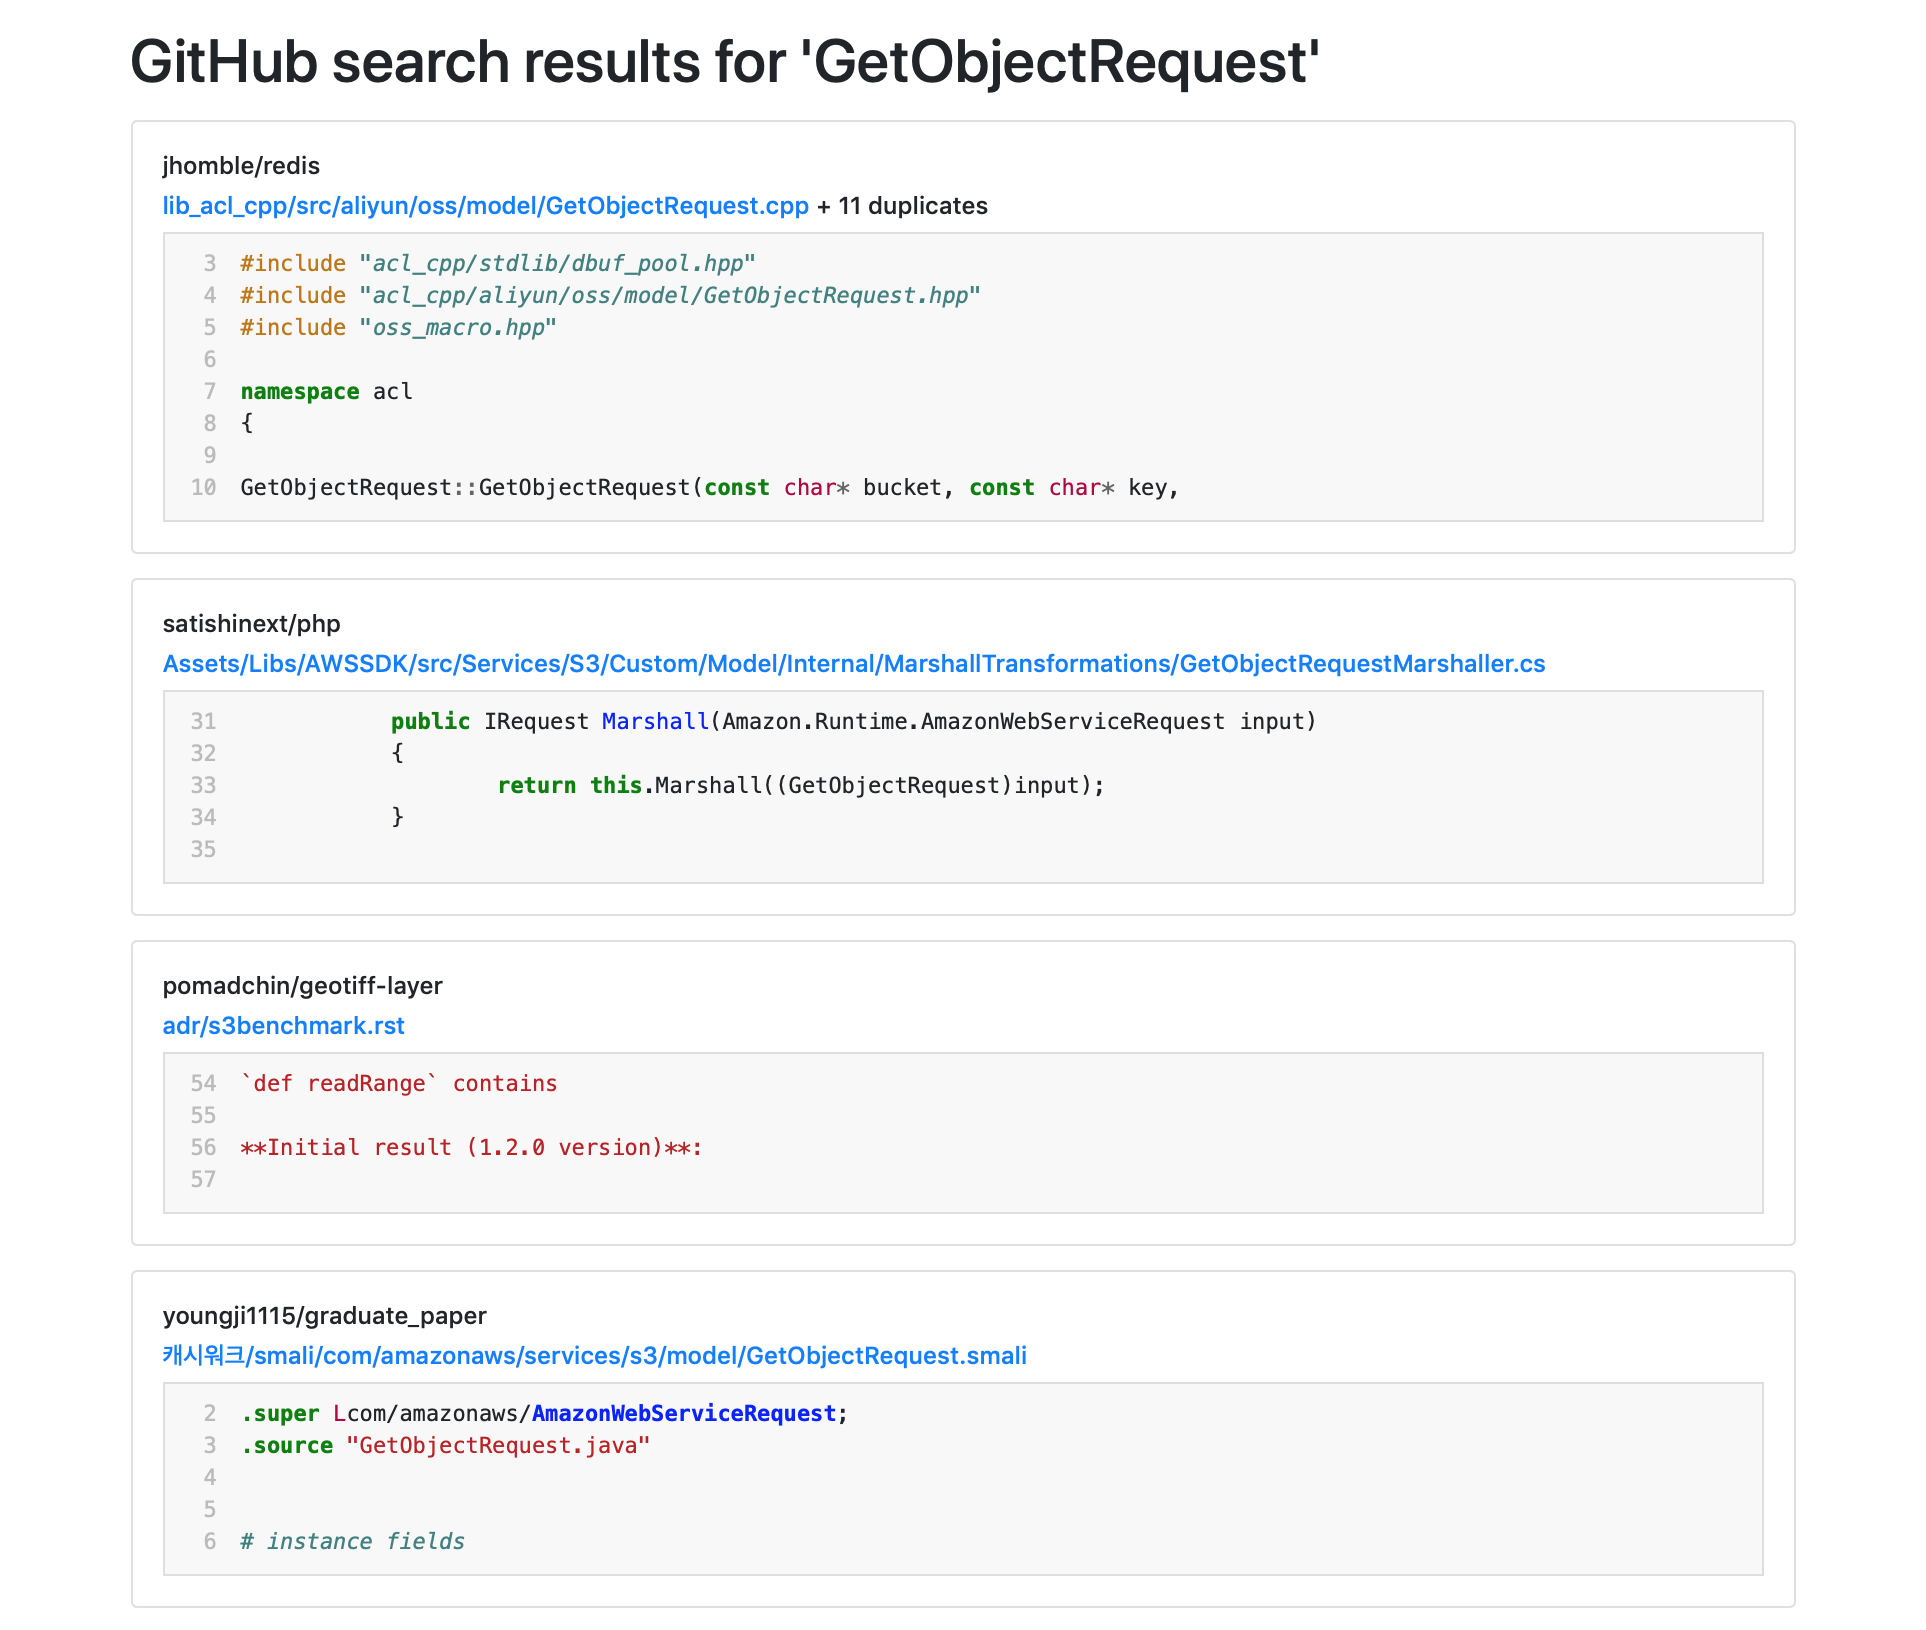 A page of search results, with a snippet of code accompanying each search result.